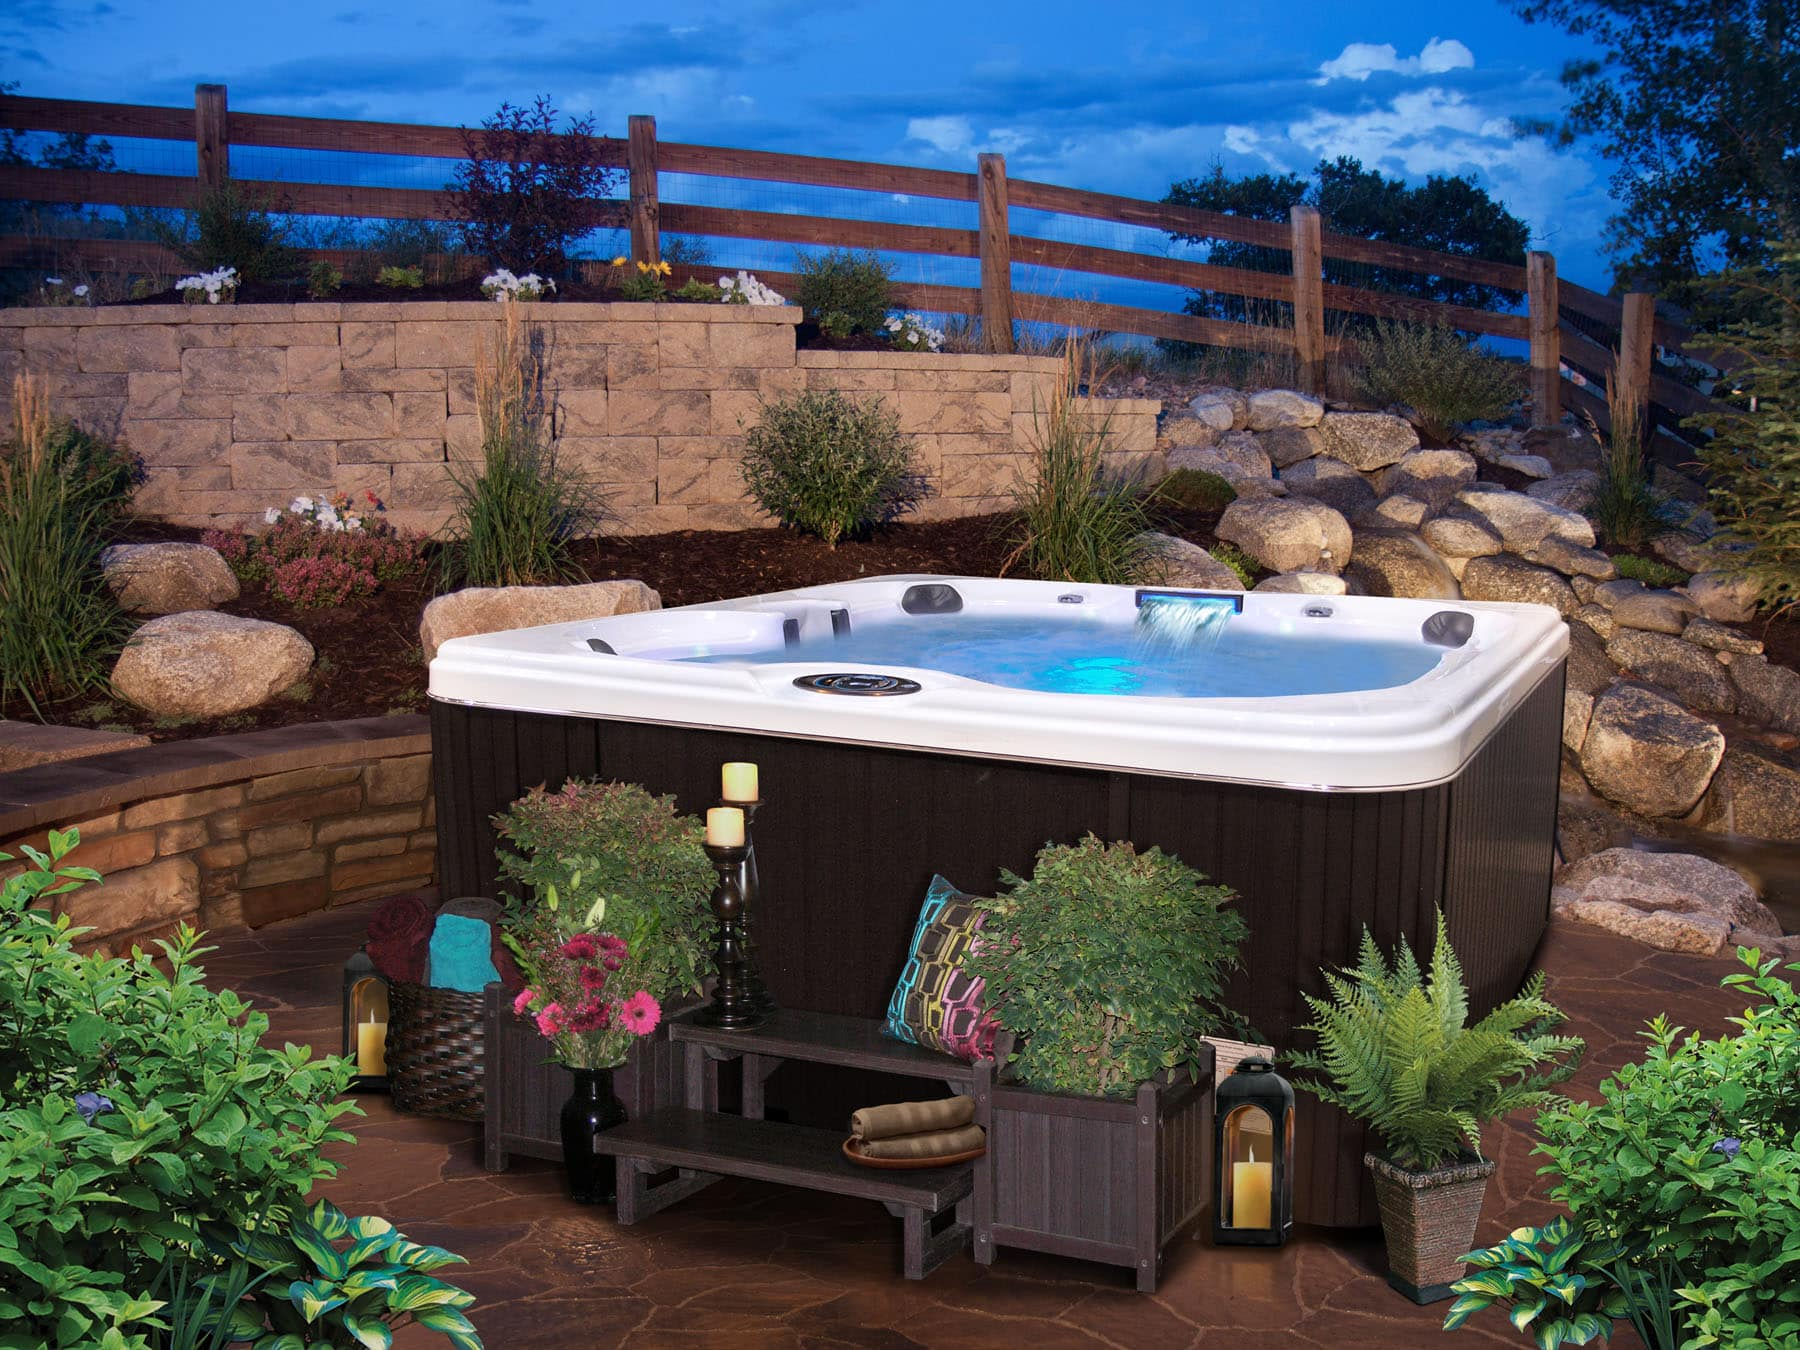 much it full size how hot inexpensive swimming tubs news cost does pools to run tub a